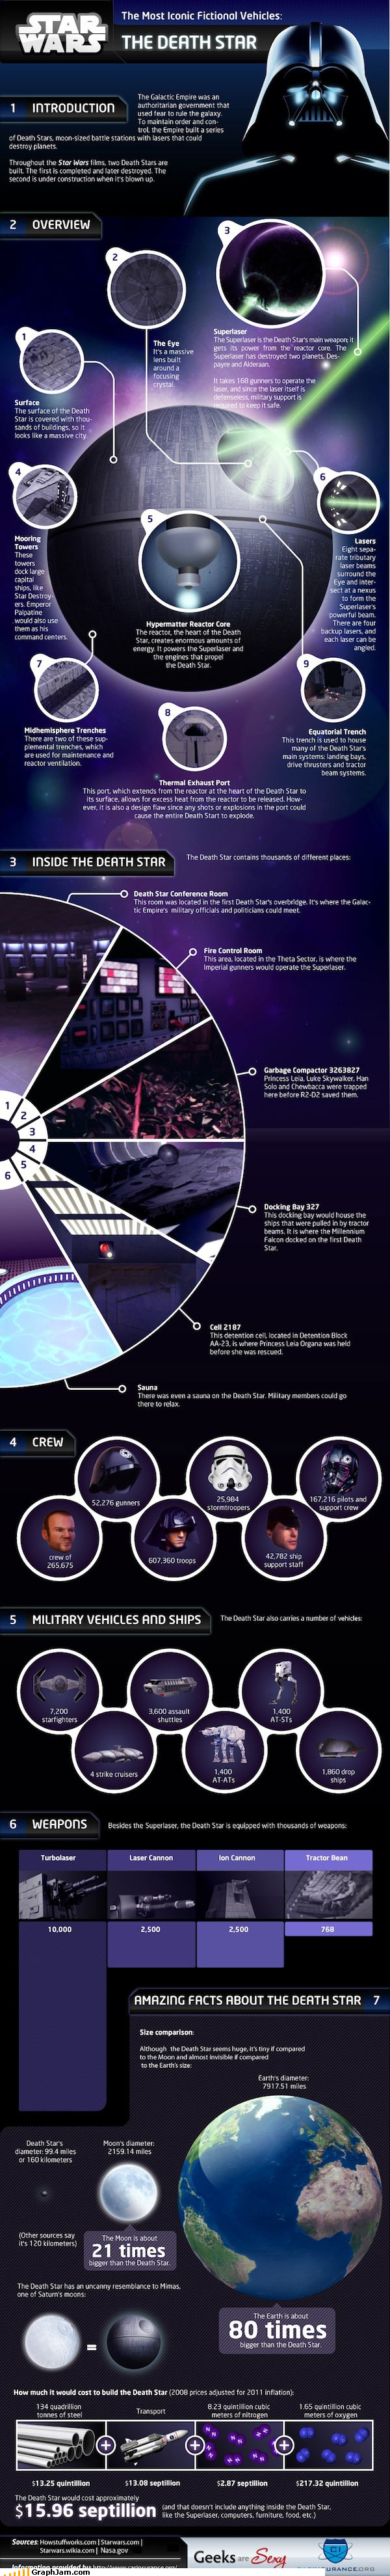 darth vader,Death Star,facts,infographic,movies,nutshell,space,star wars